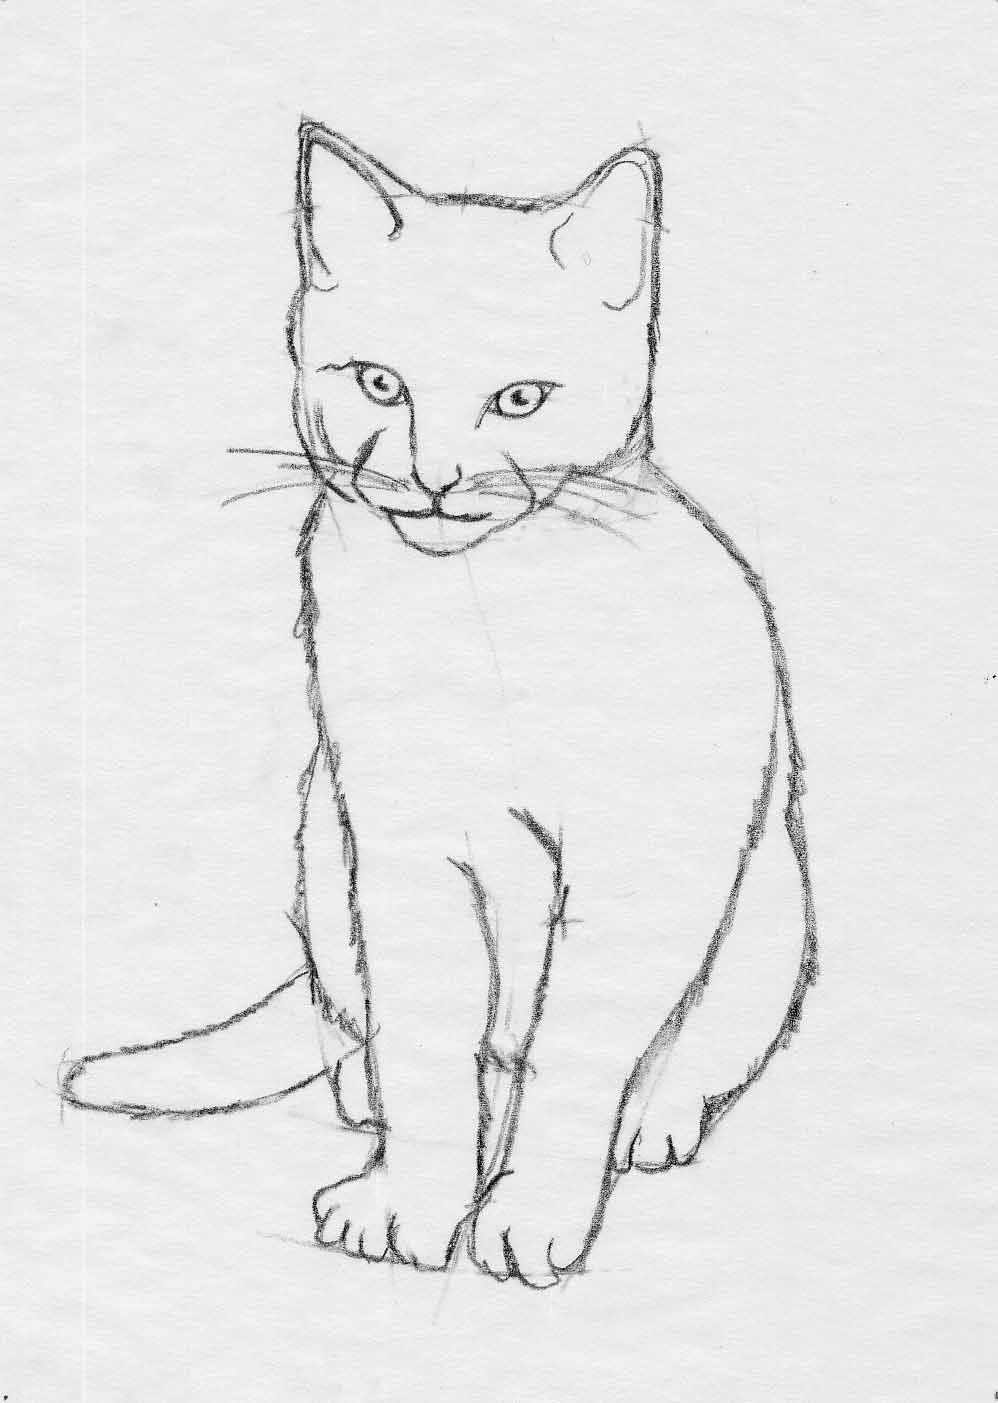 pin by jean lake on tattoos pinterest google images cat sketch